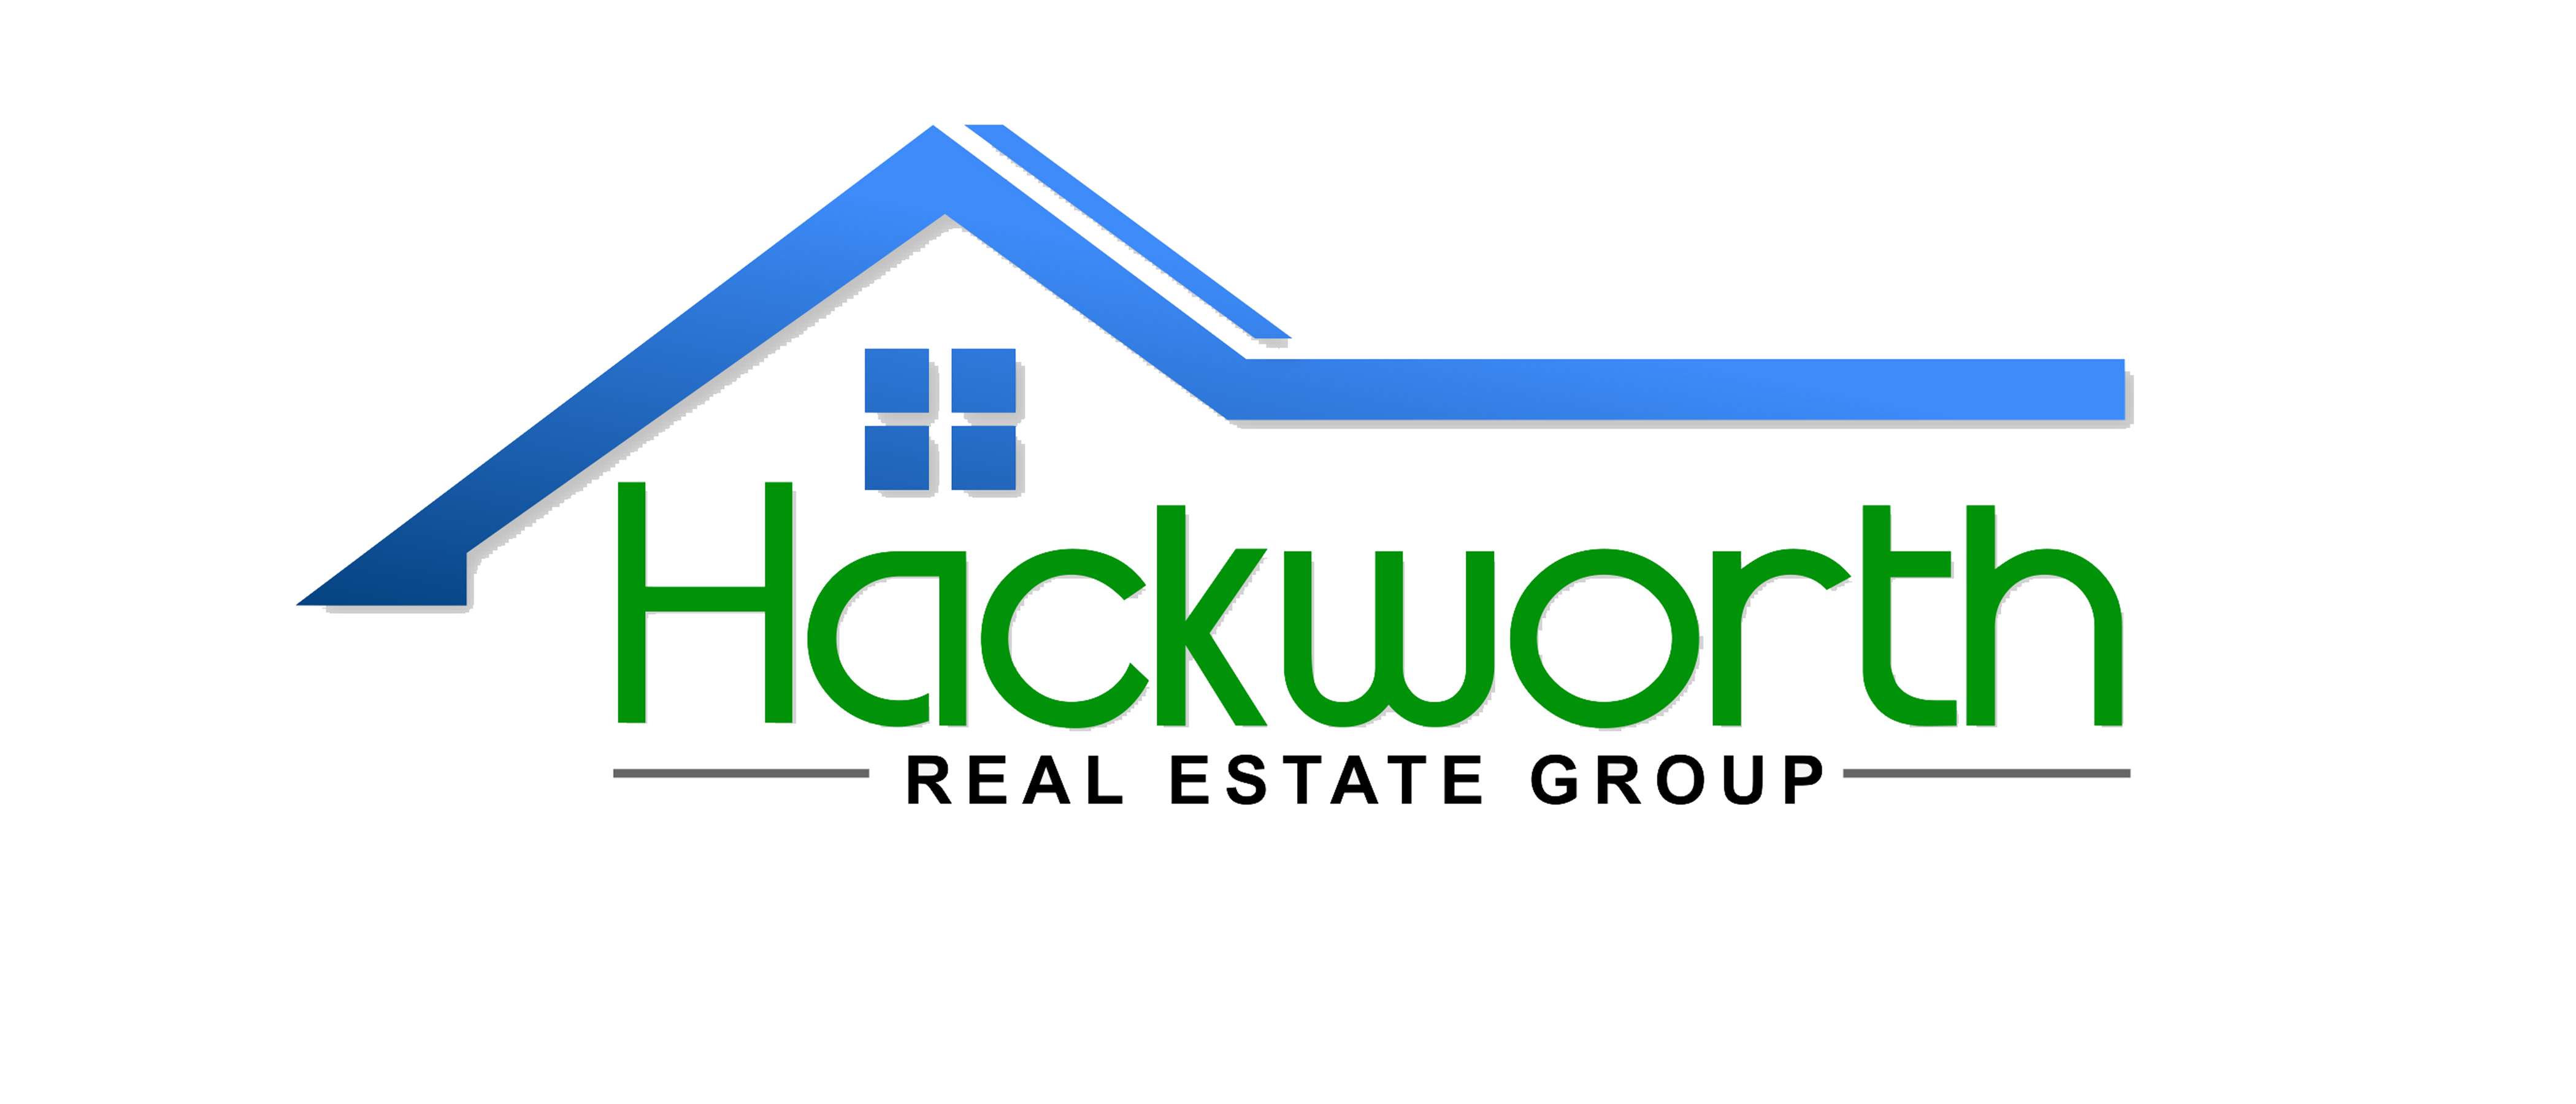 Hackworth Real Estate Group